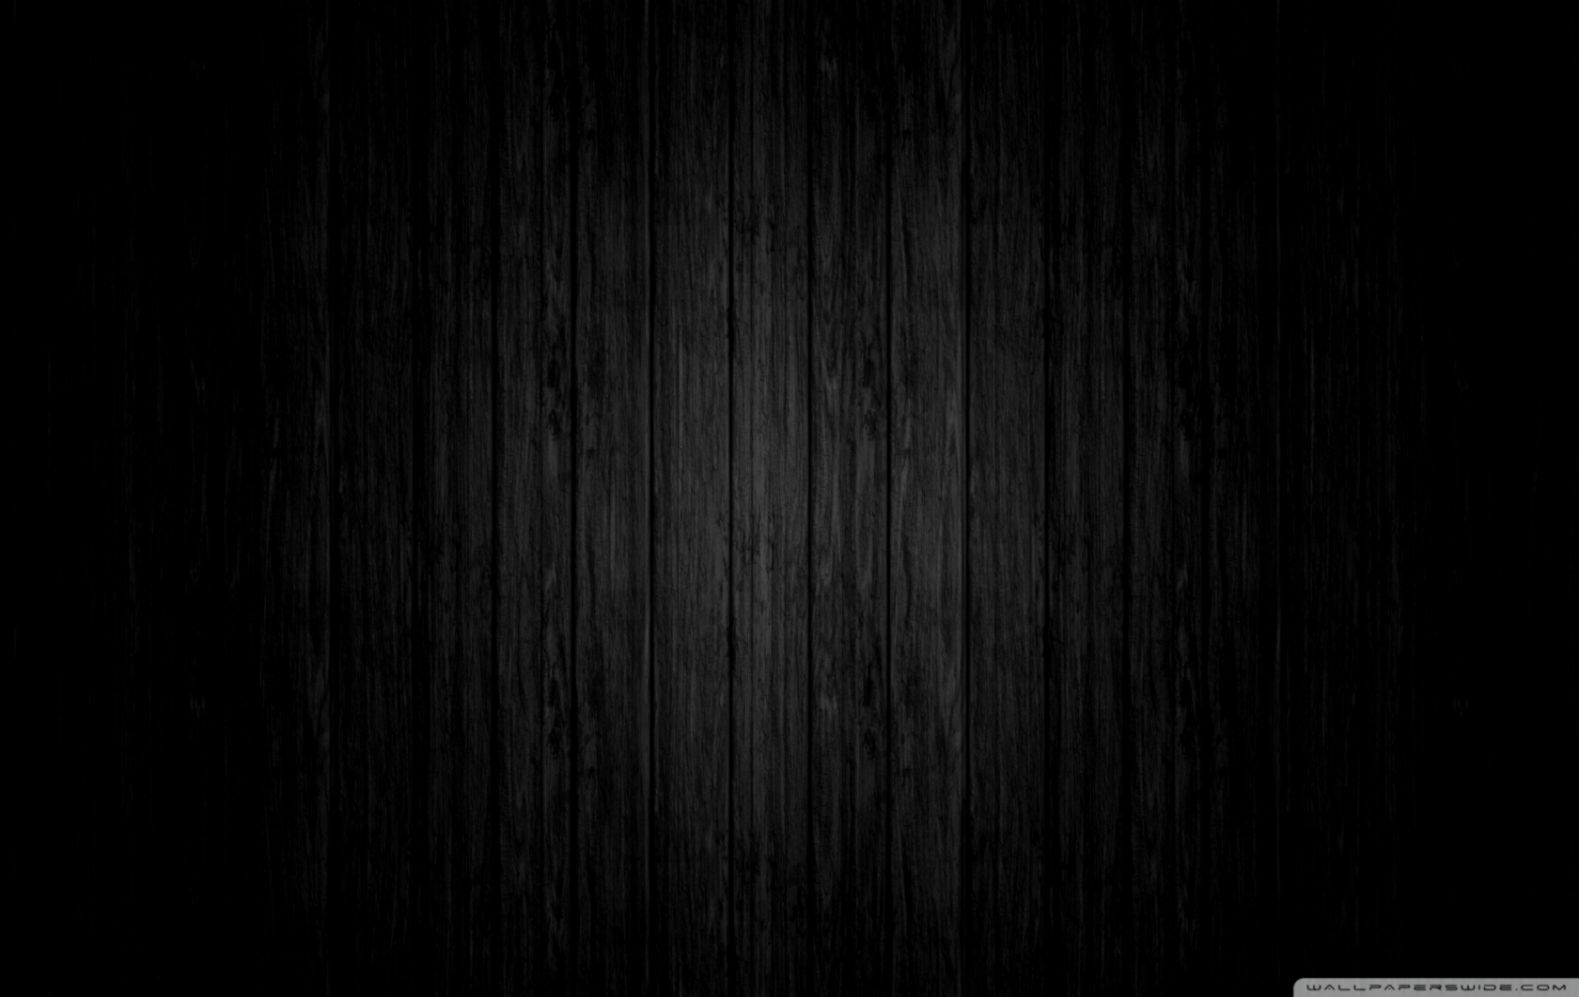 Wallpaper Hd Black Di 2020 Warna Hitam